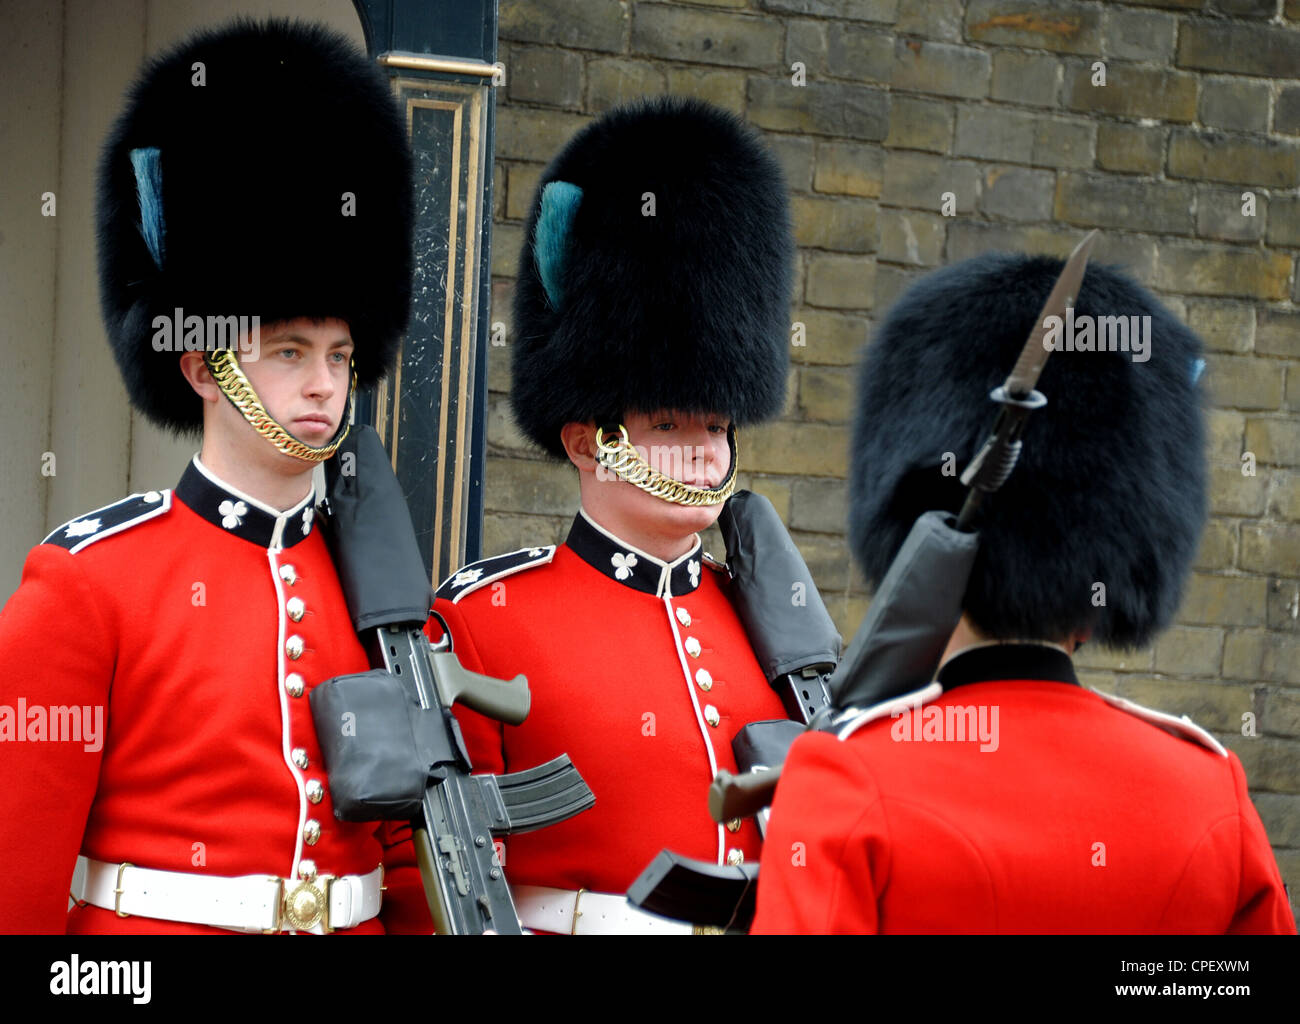 Queen's household guardsmen on guard near The Mall. - Stock Image